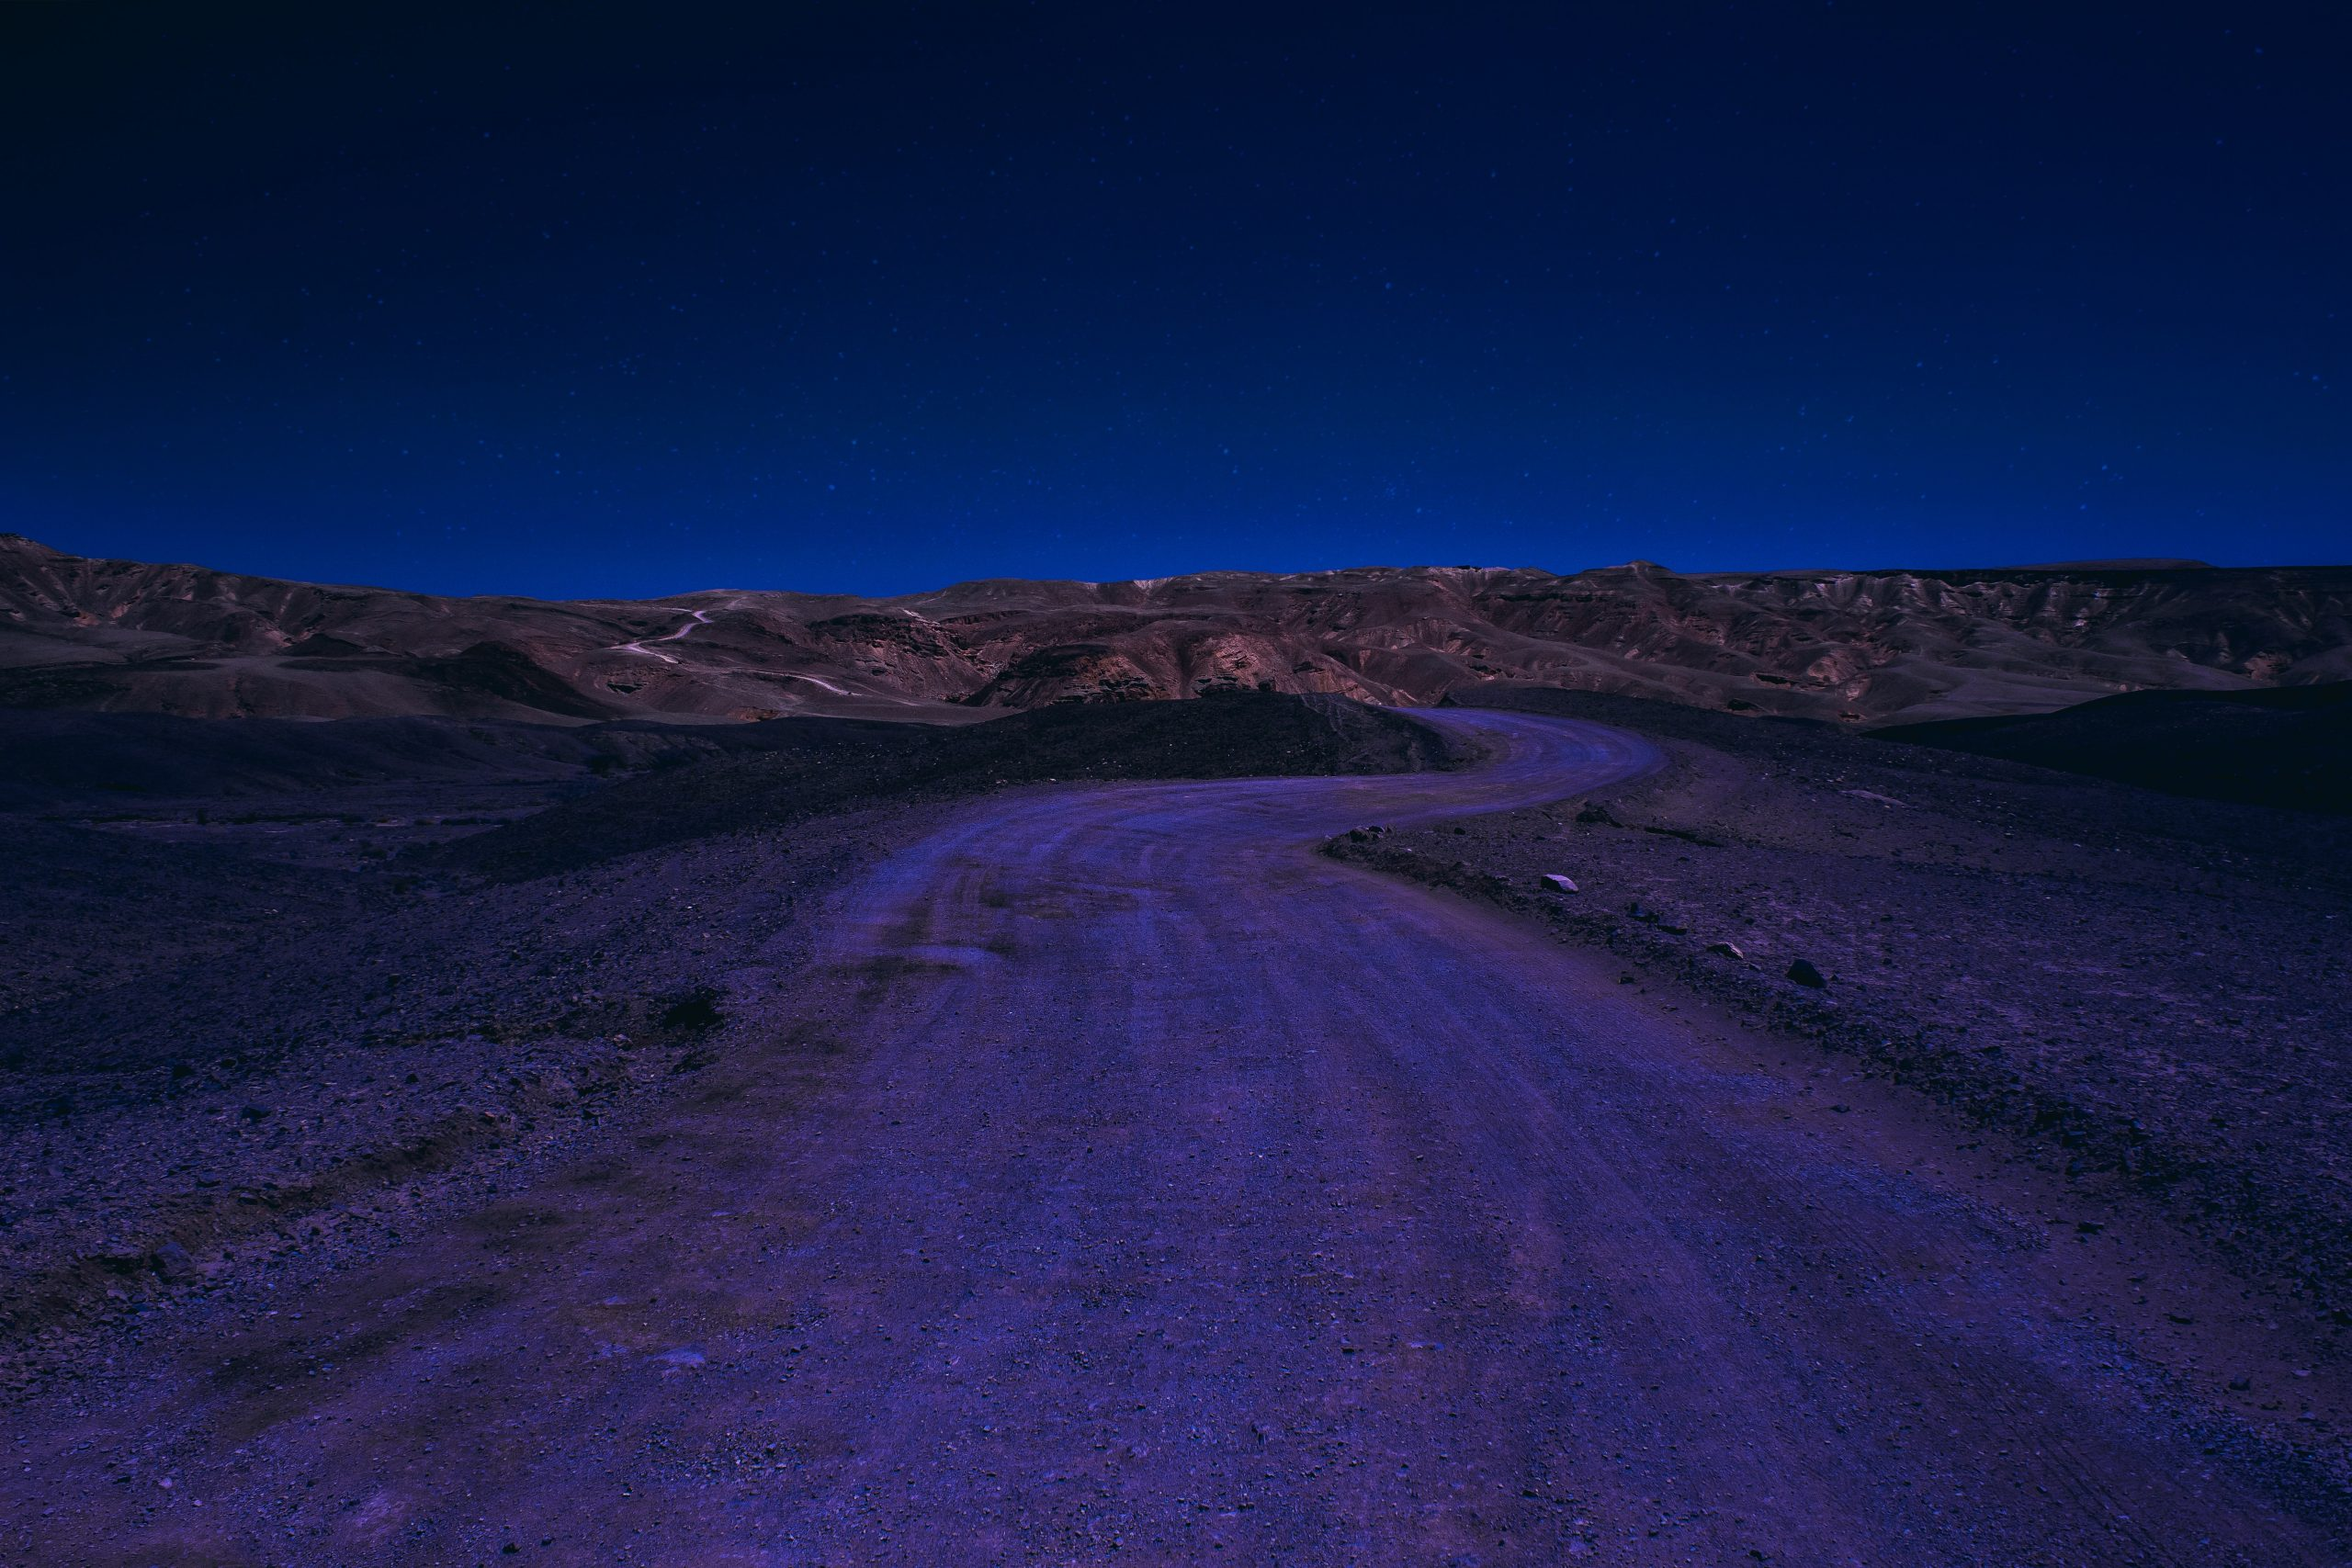 Desert Road at Night Wallpaper